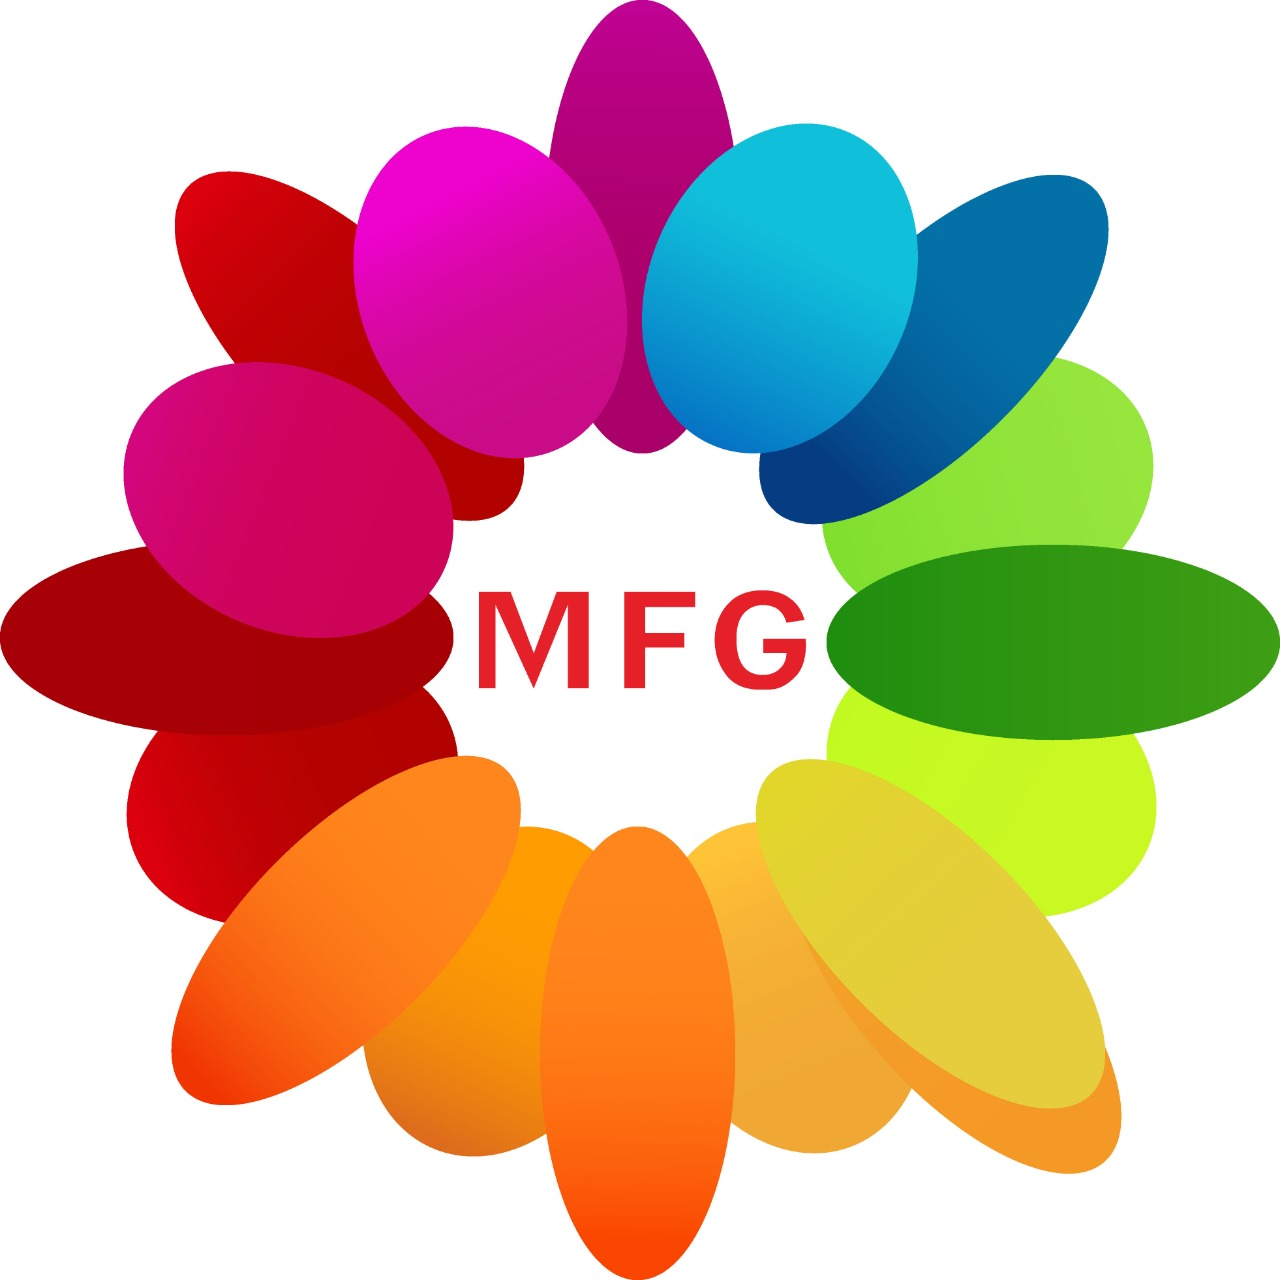 Bunch of 8 pink carnations with box of 16 pcs rocher ferrero chocolates